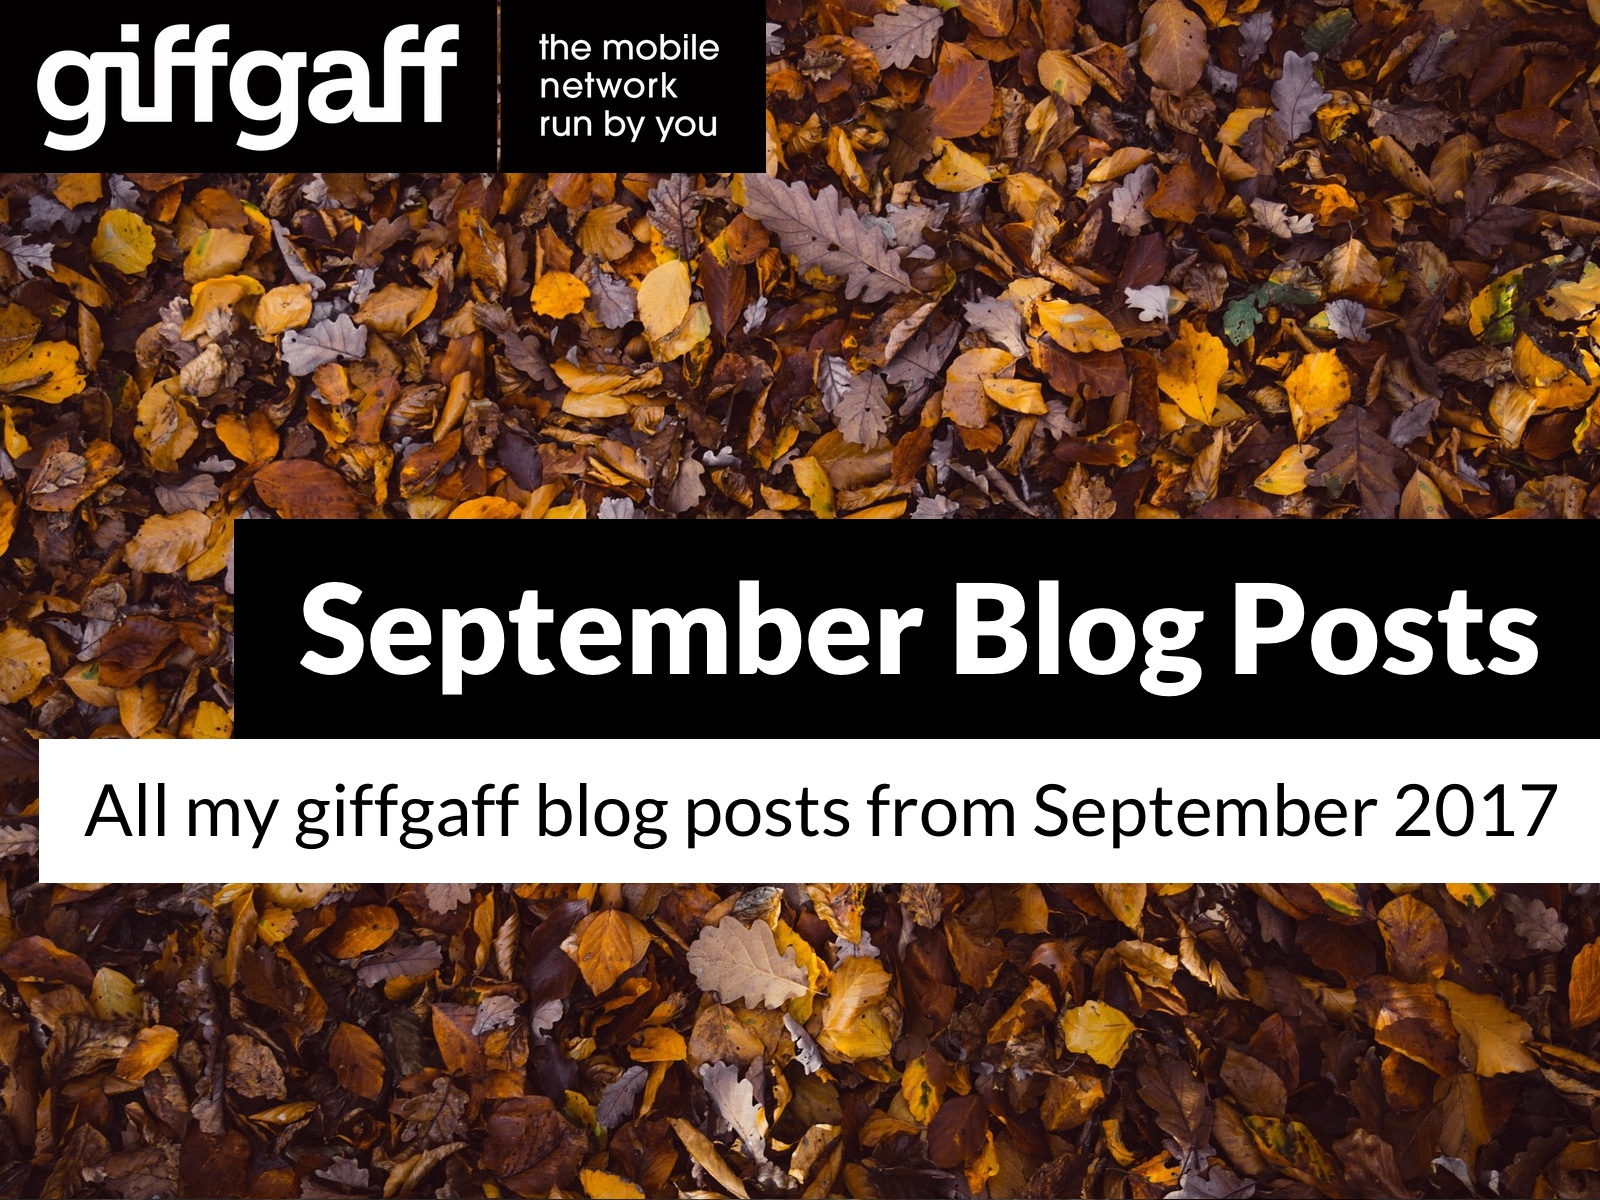 September 2017 Blog Posts